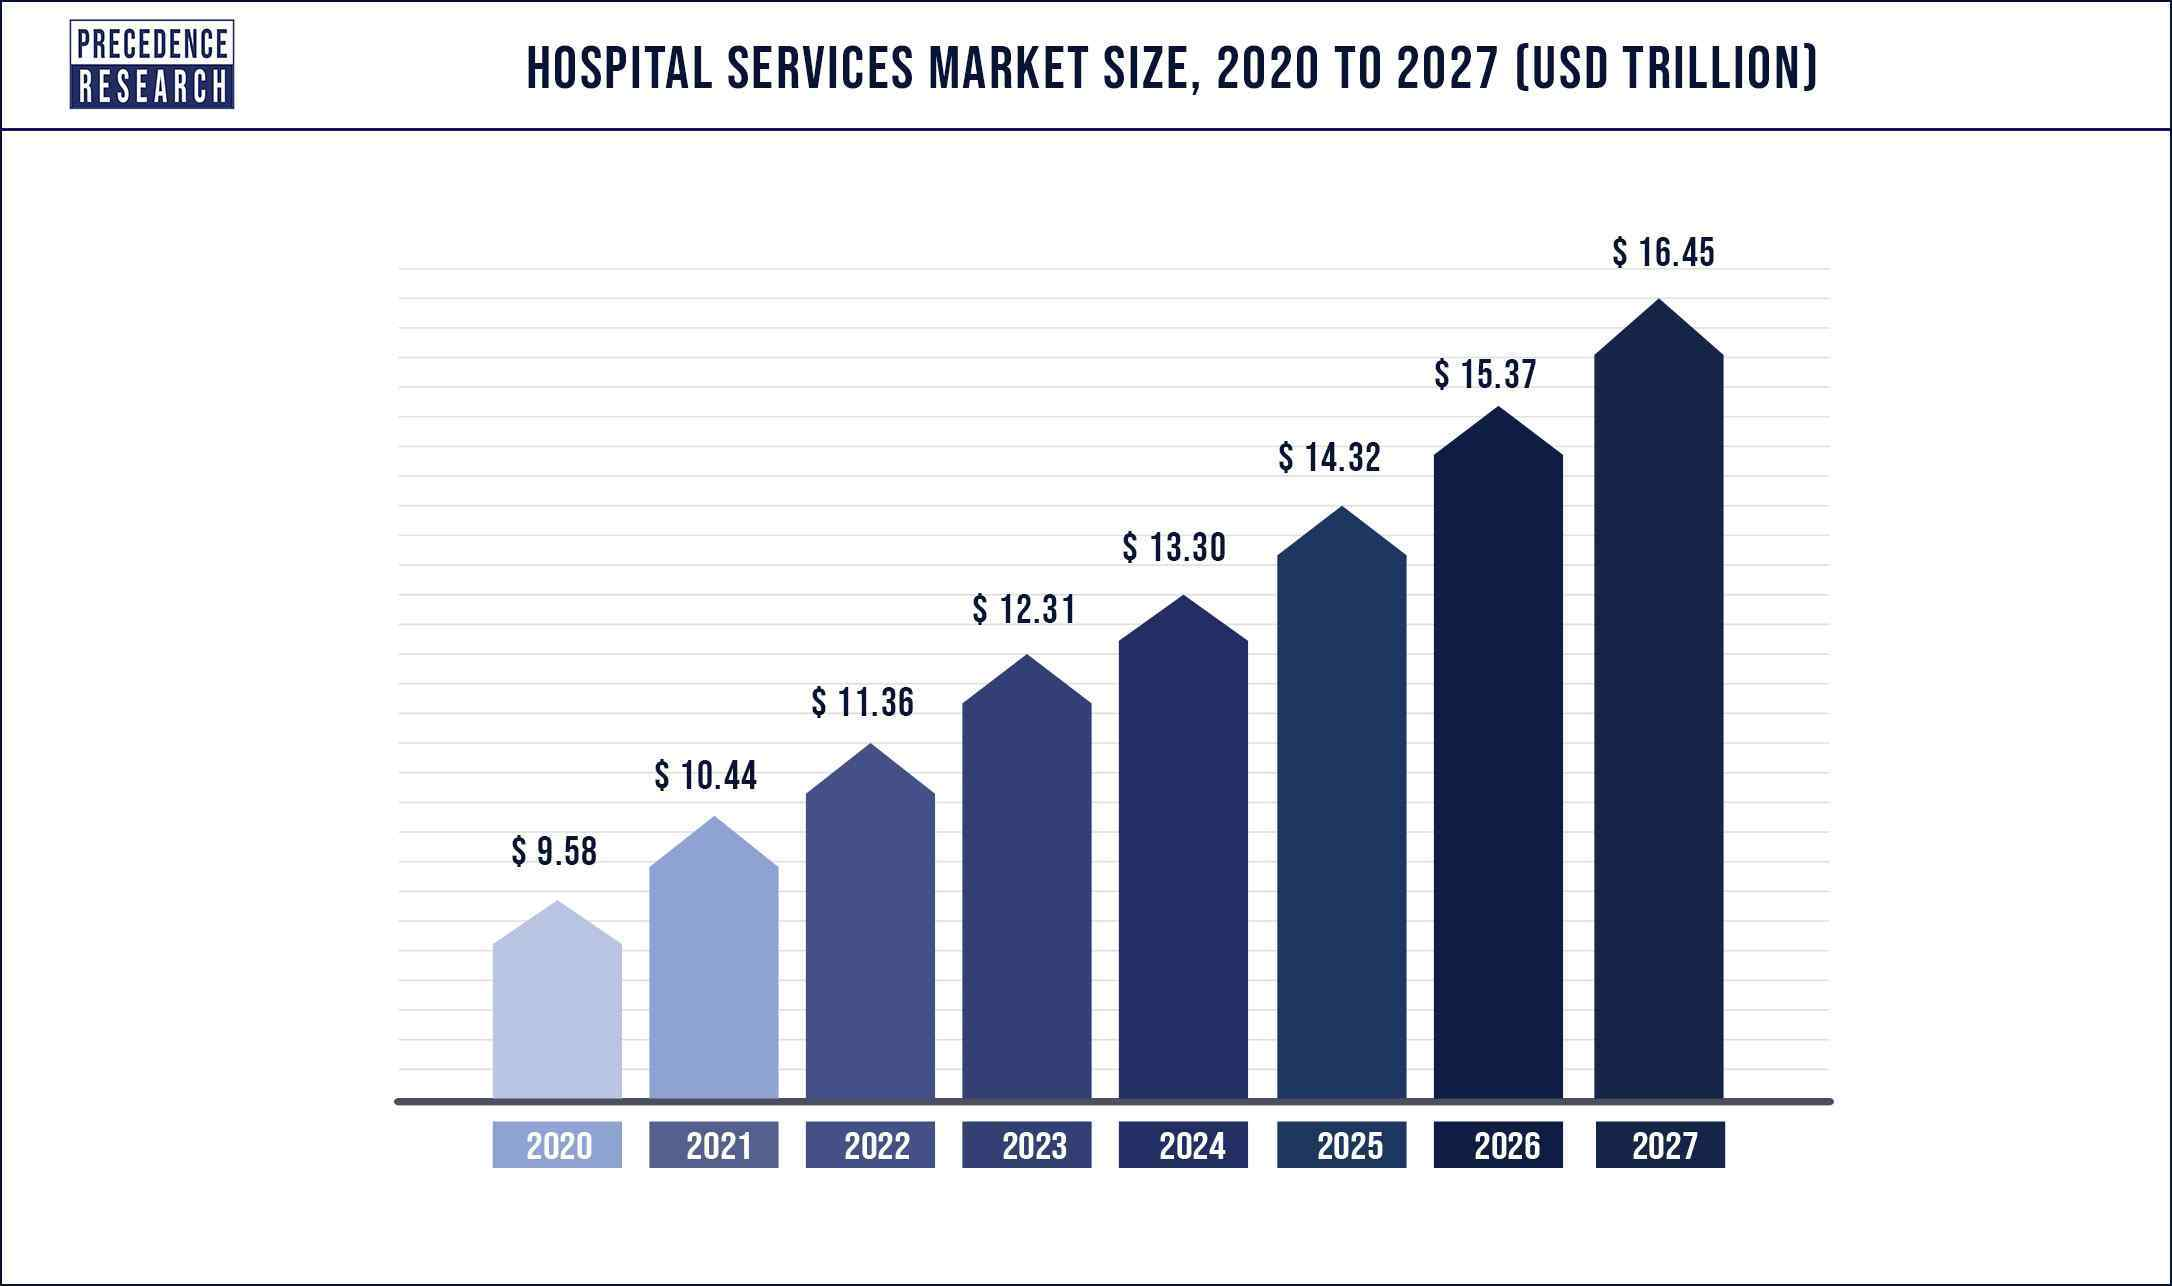 Hospital Services Market Size 2020 to 2027